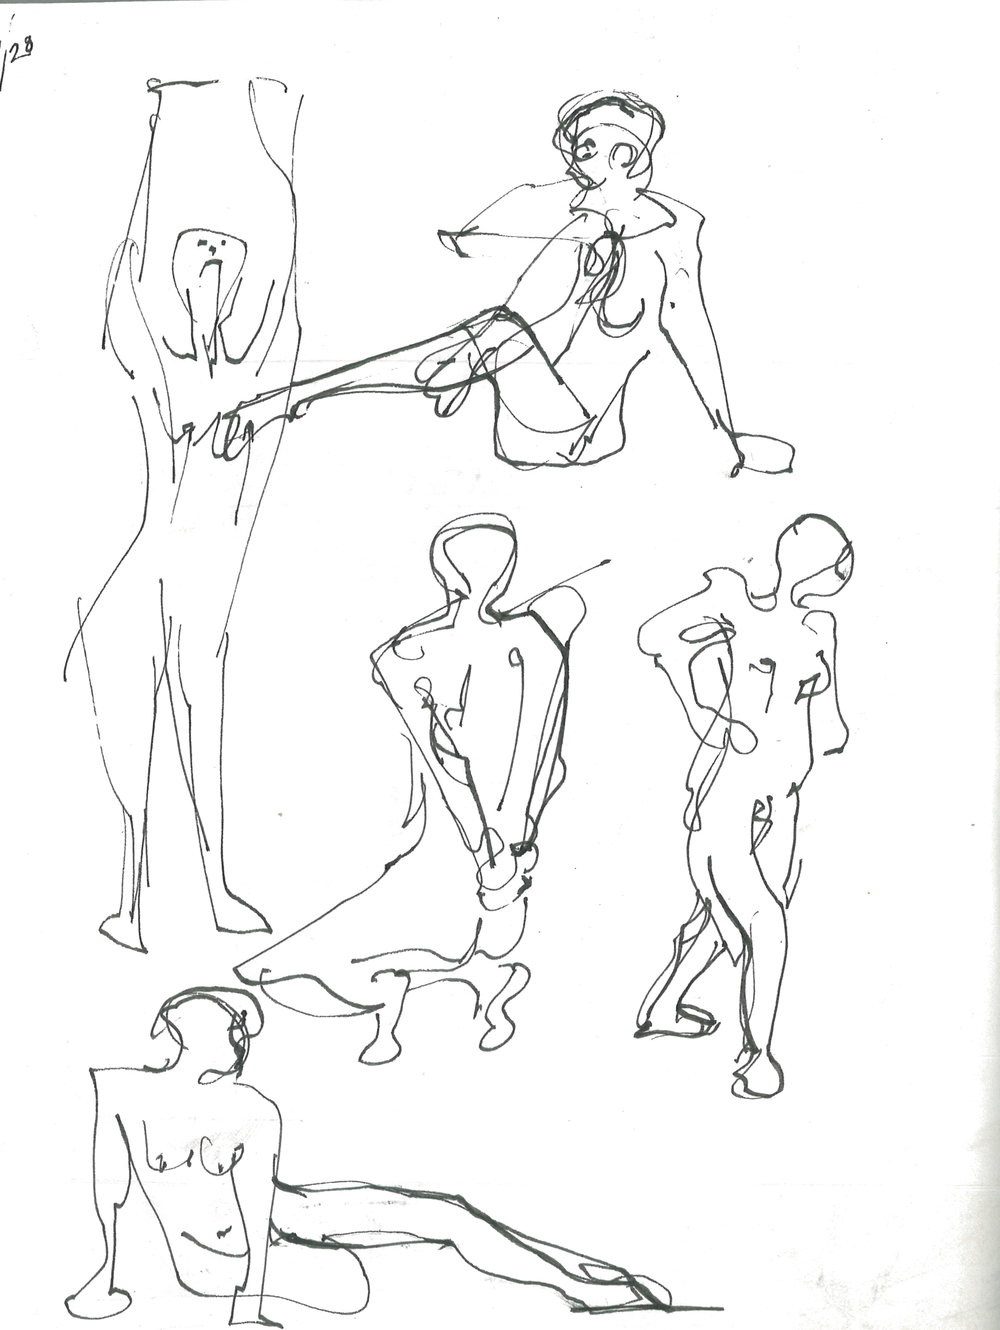 FIGURE_1_SketchbookA_ScanE_Page_5.jpg